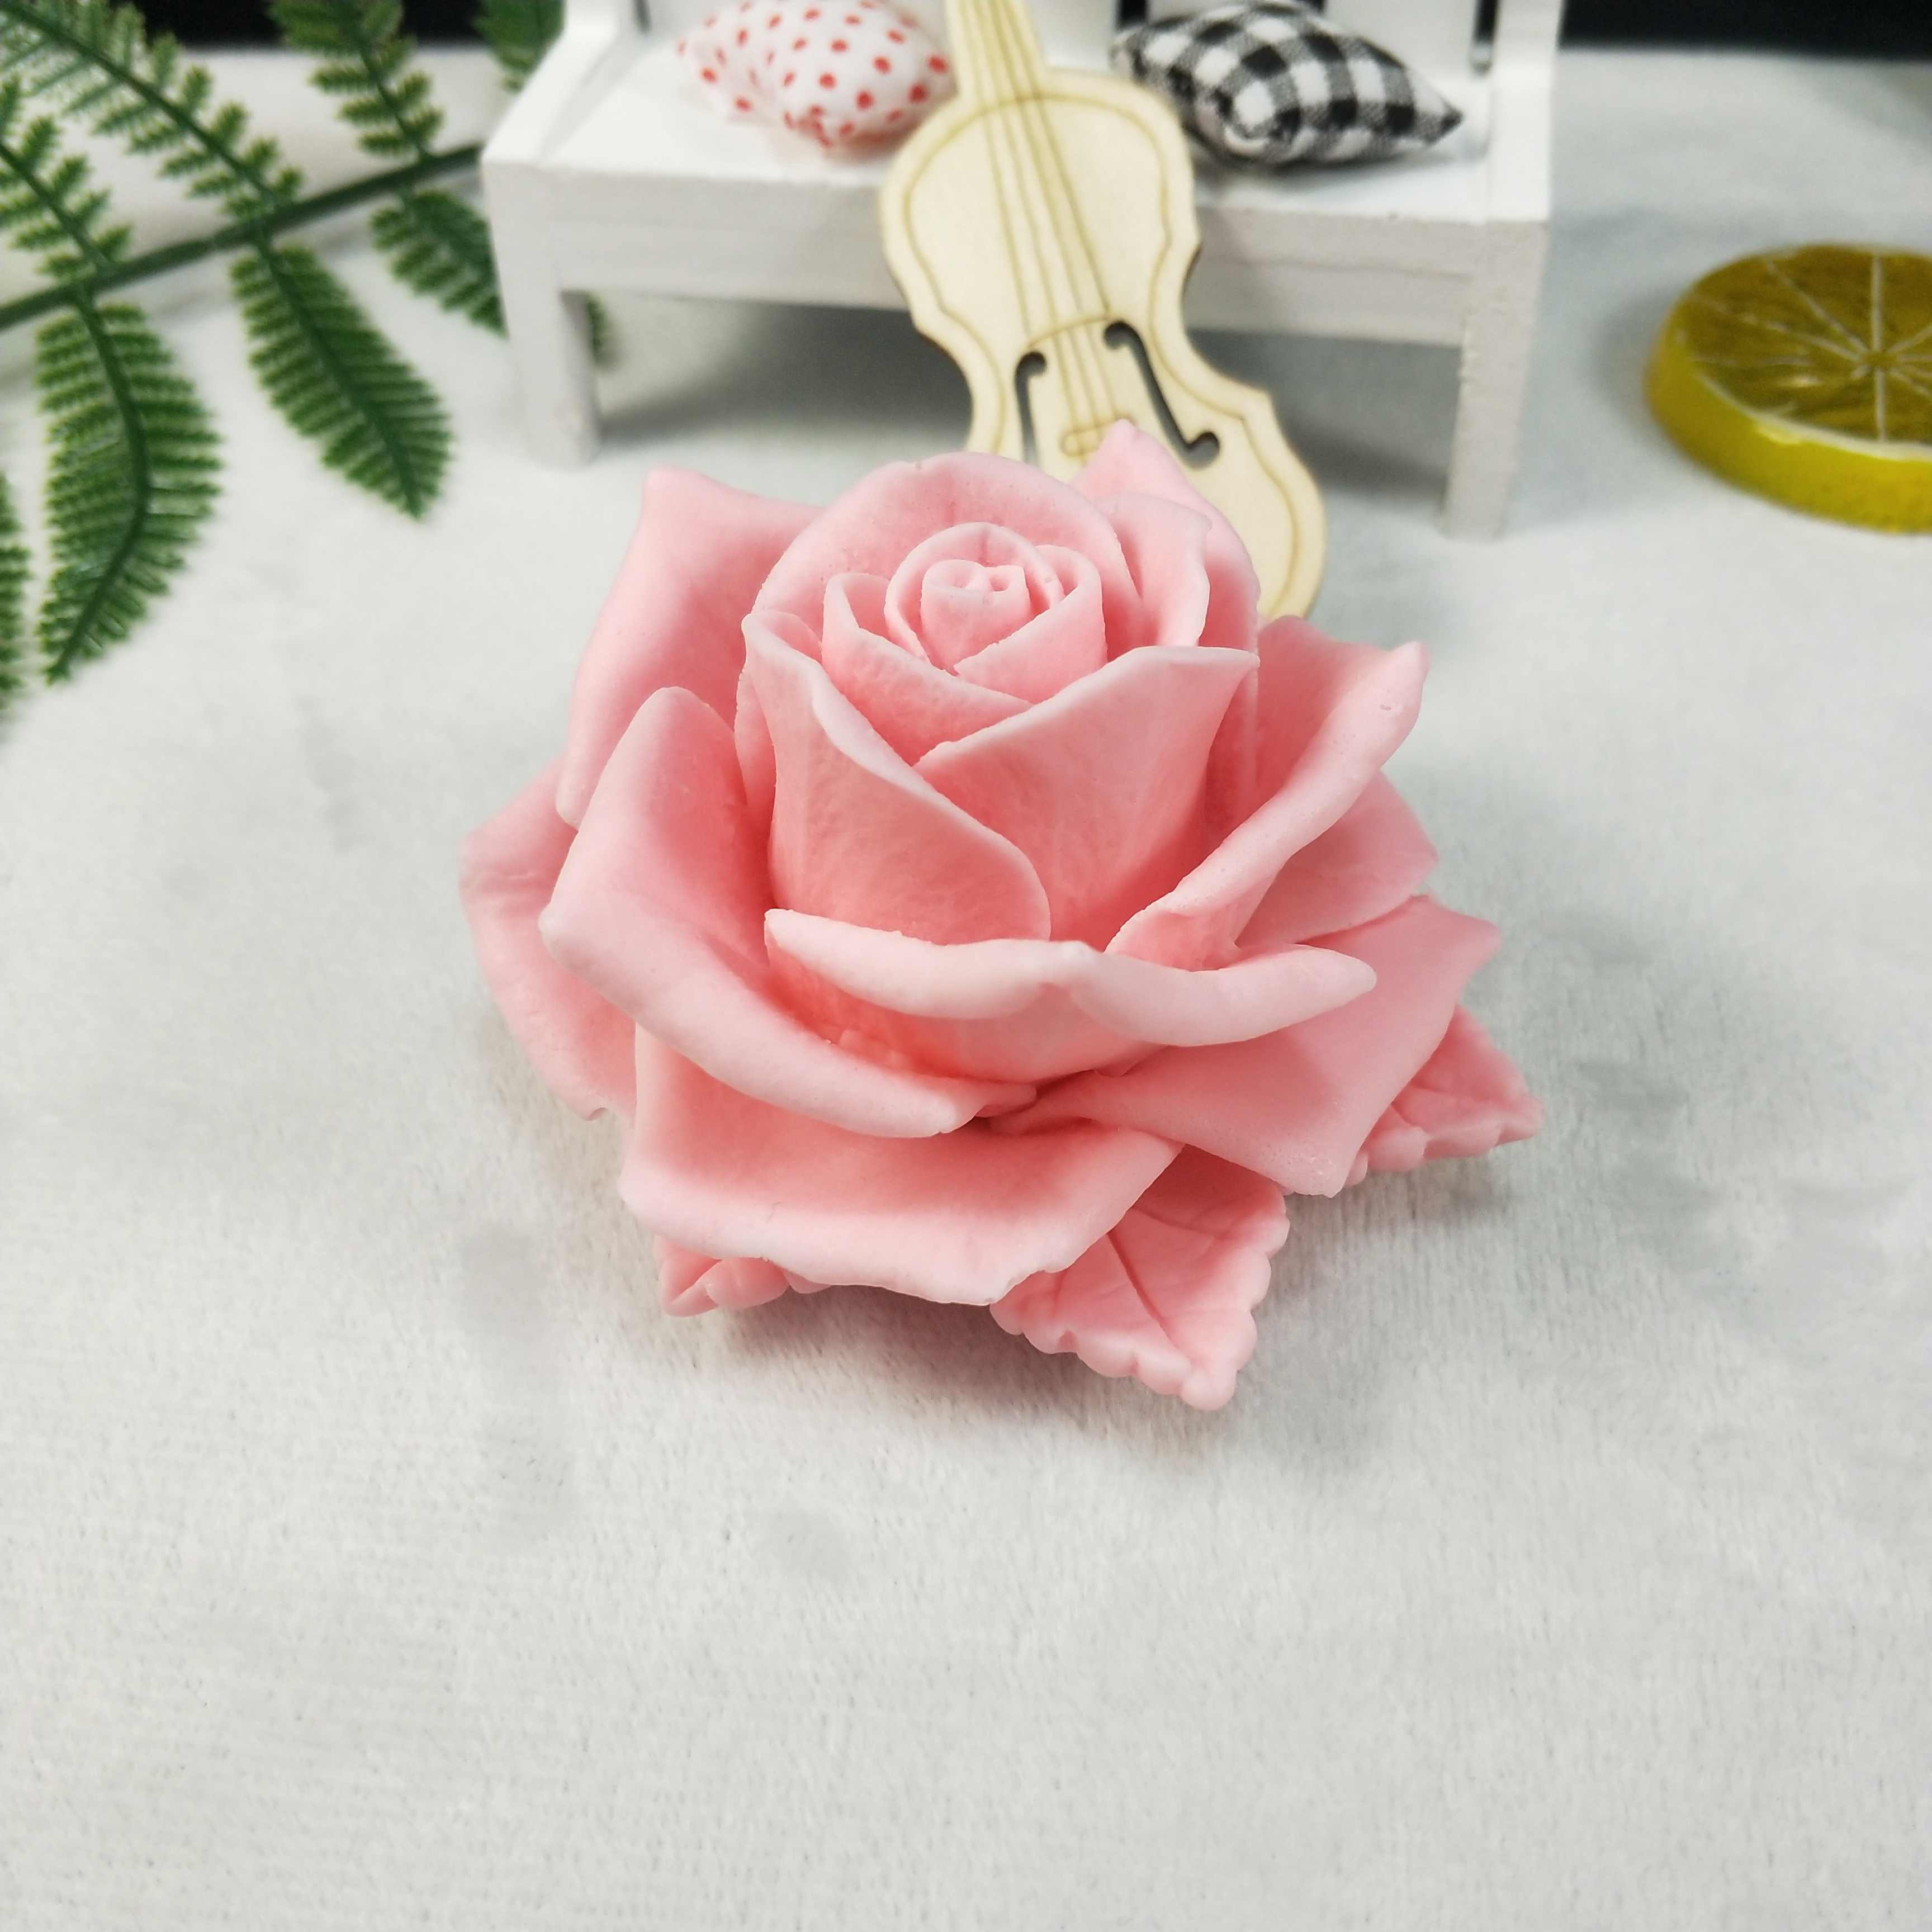 candles chocolate Flower molds Rose molds 3D silicone mold a Big bouquet of  Roses silicone mold for soap gypsum